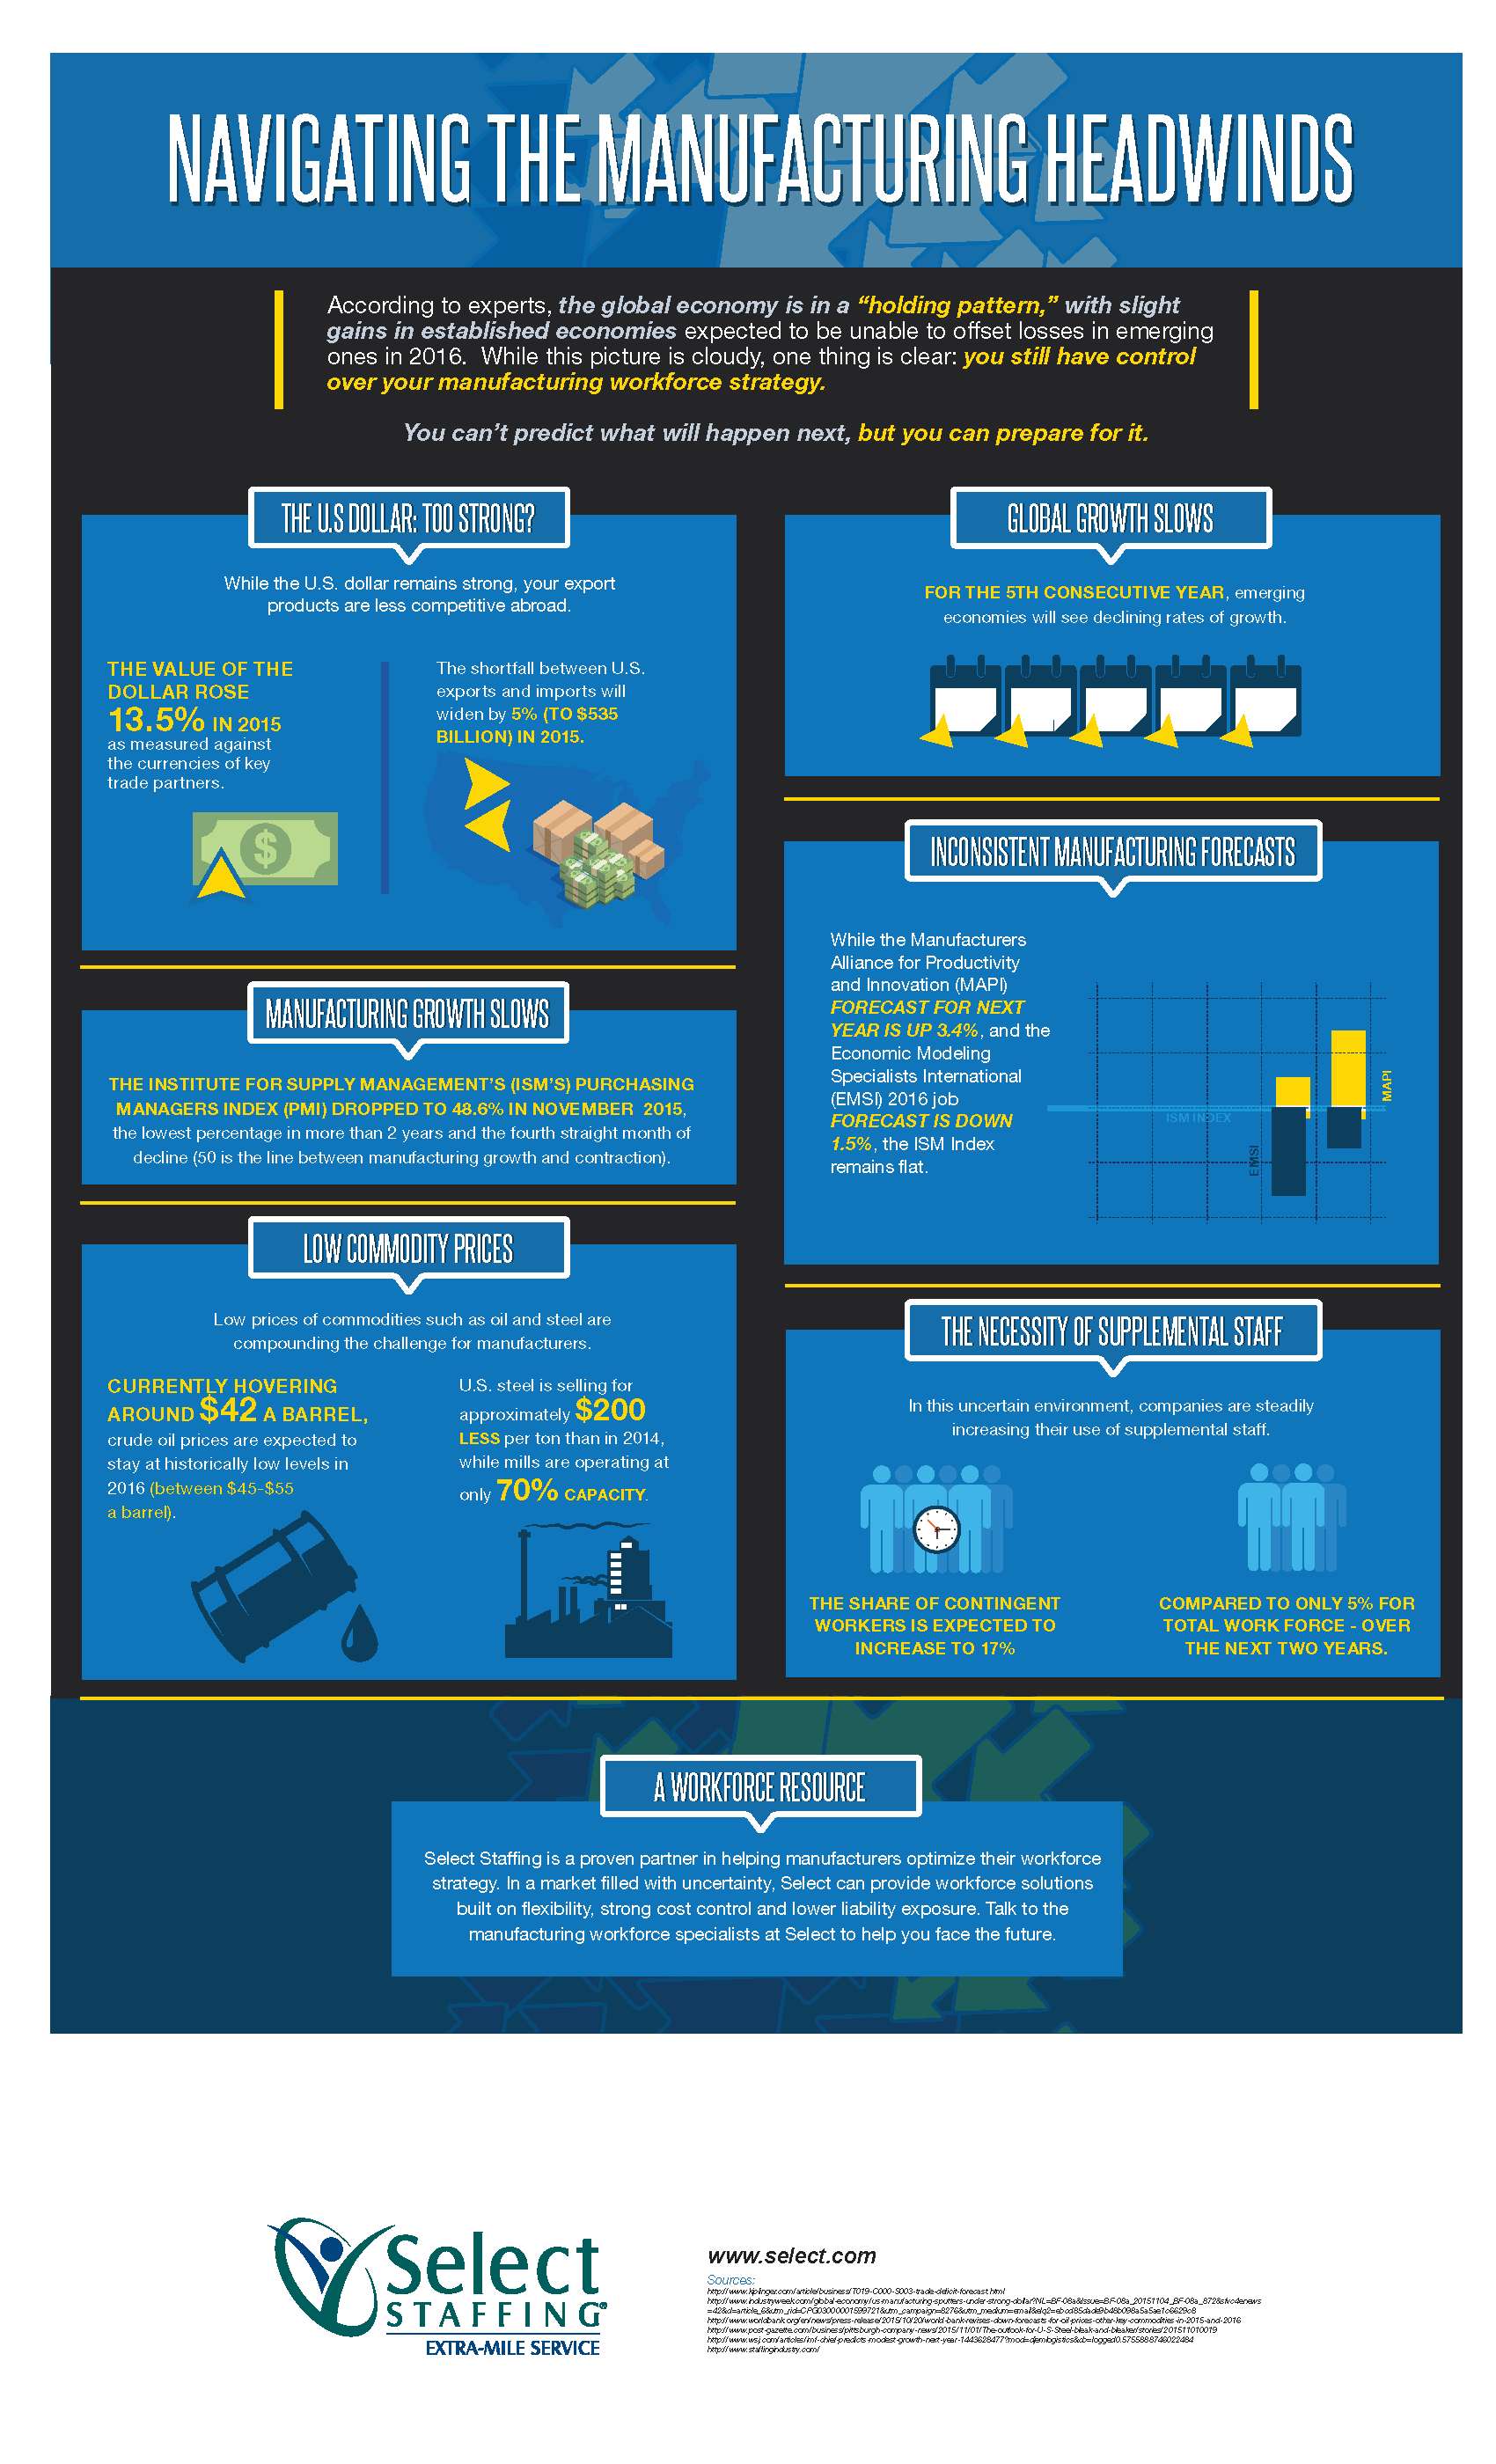 Navigating the Manufacturing Headwinds - Infographic